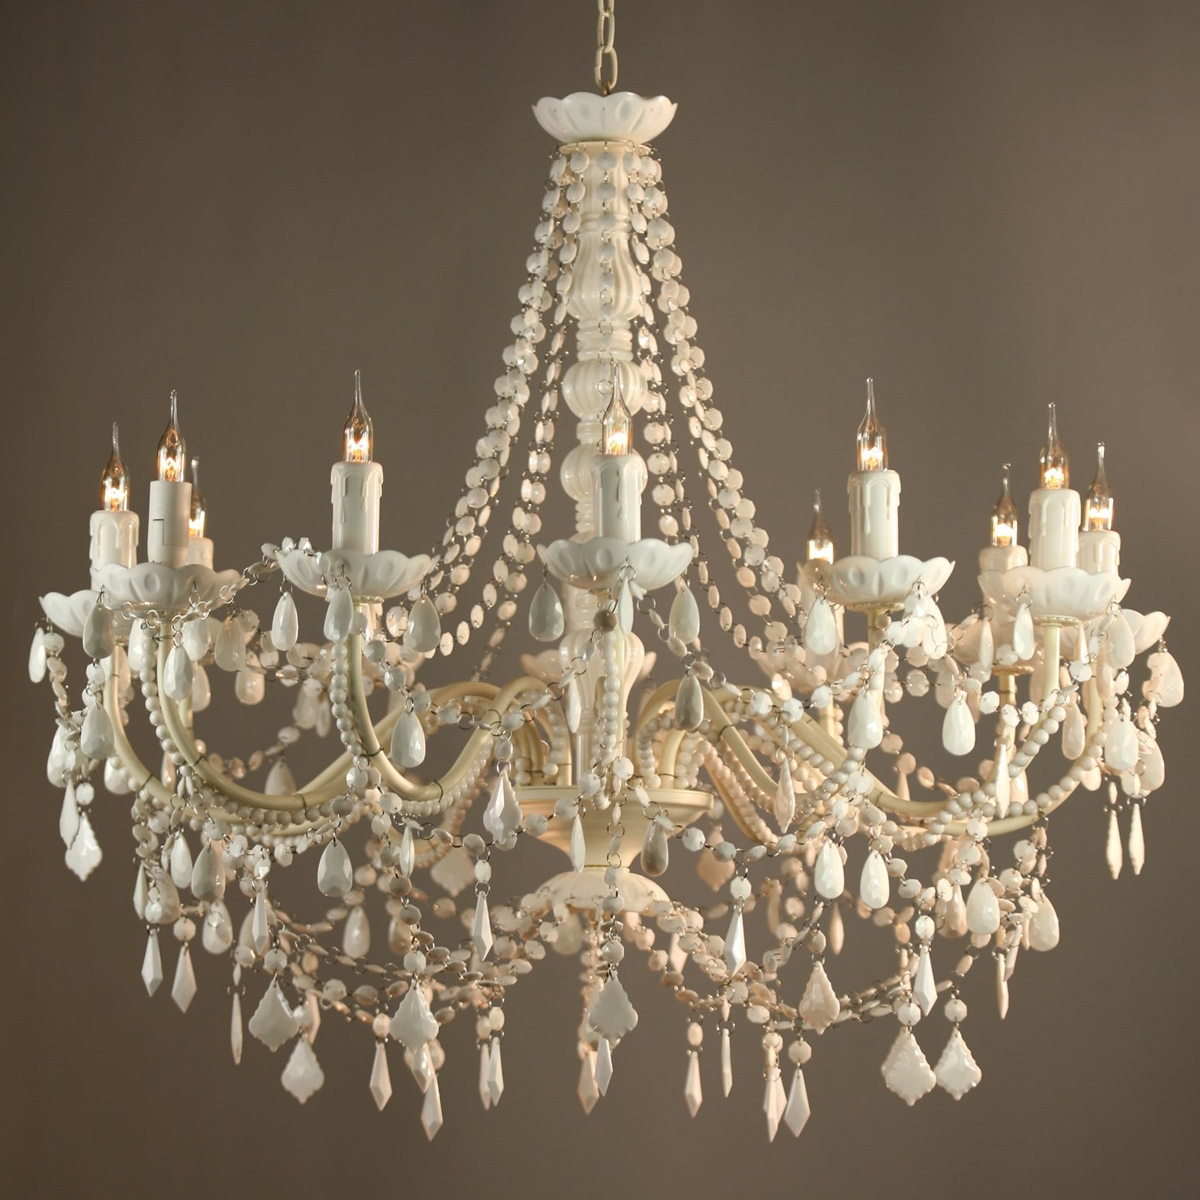 French Chandelier Design Of Your House Its Good Idea For Your Life Throughout French Chandelier (Image 4 of 15)